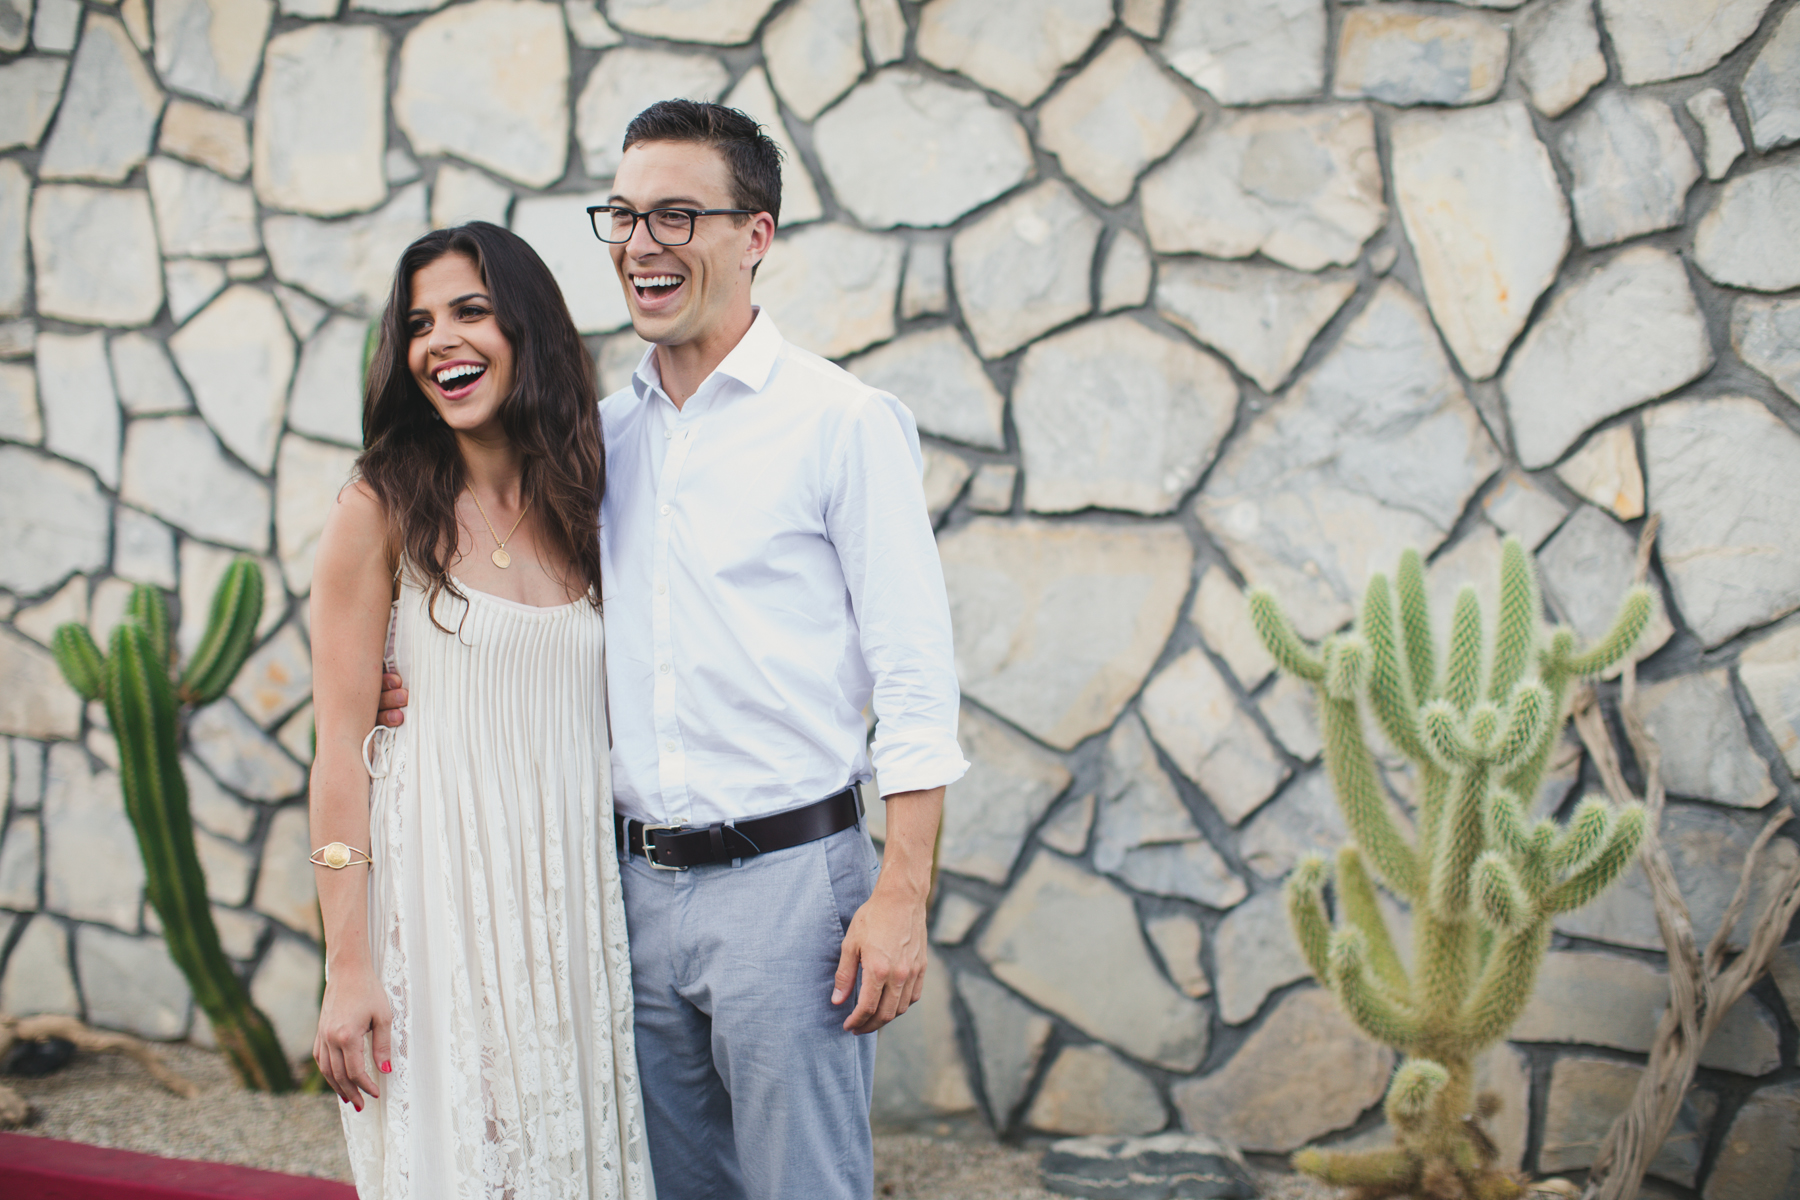 All_Days_Wonder_Palm_Springs_Engagement-23.jpg